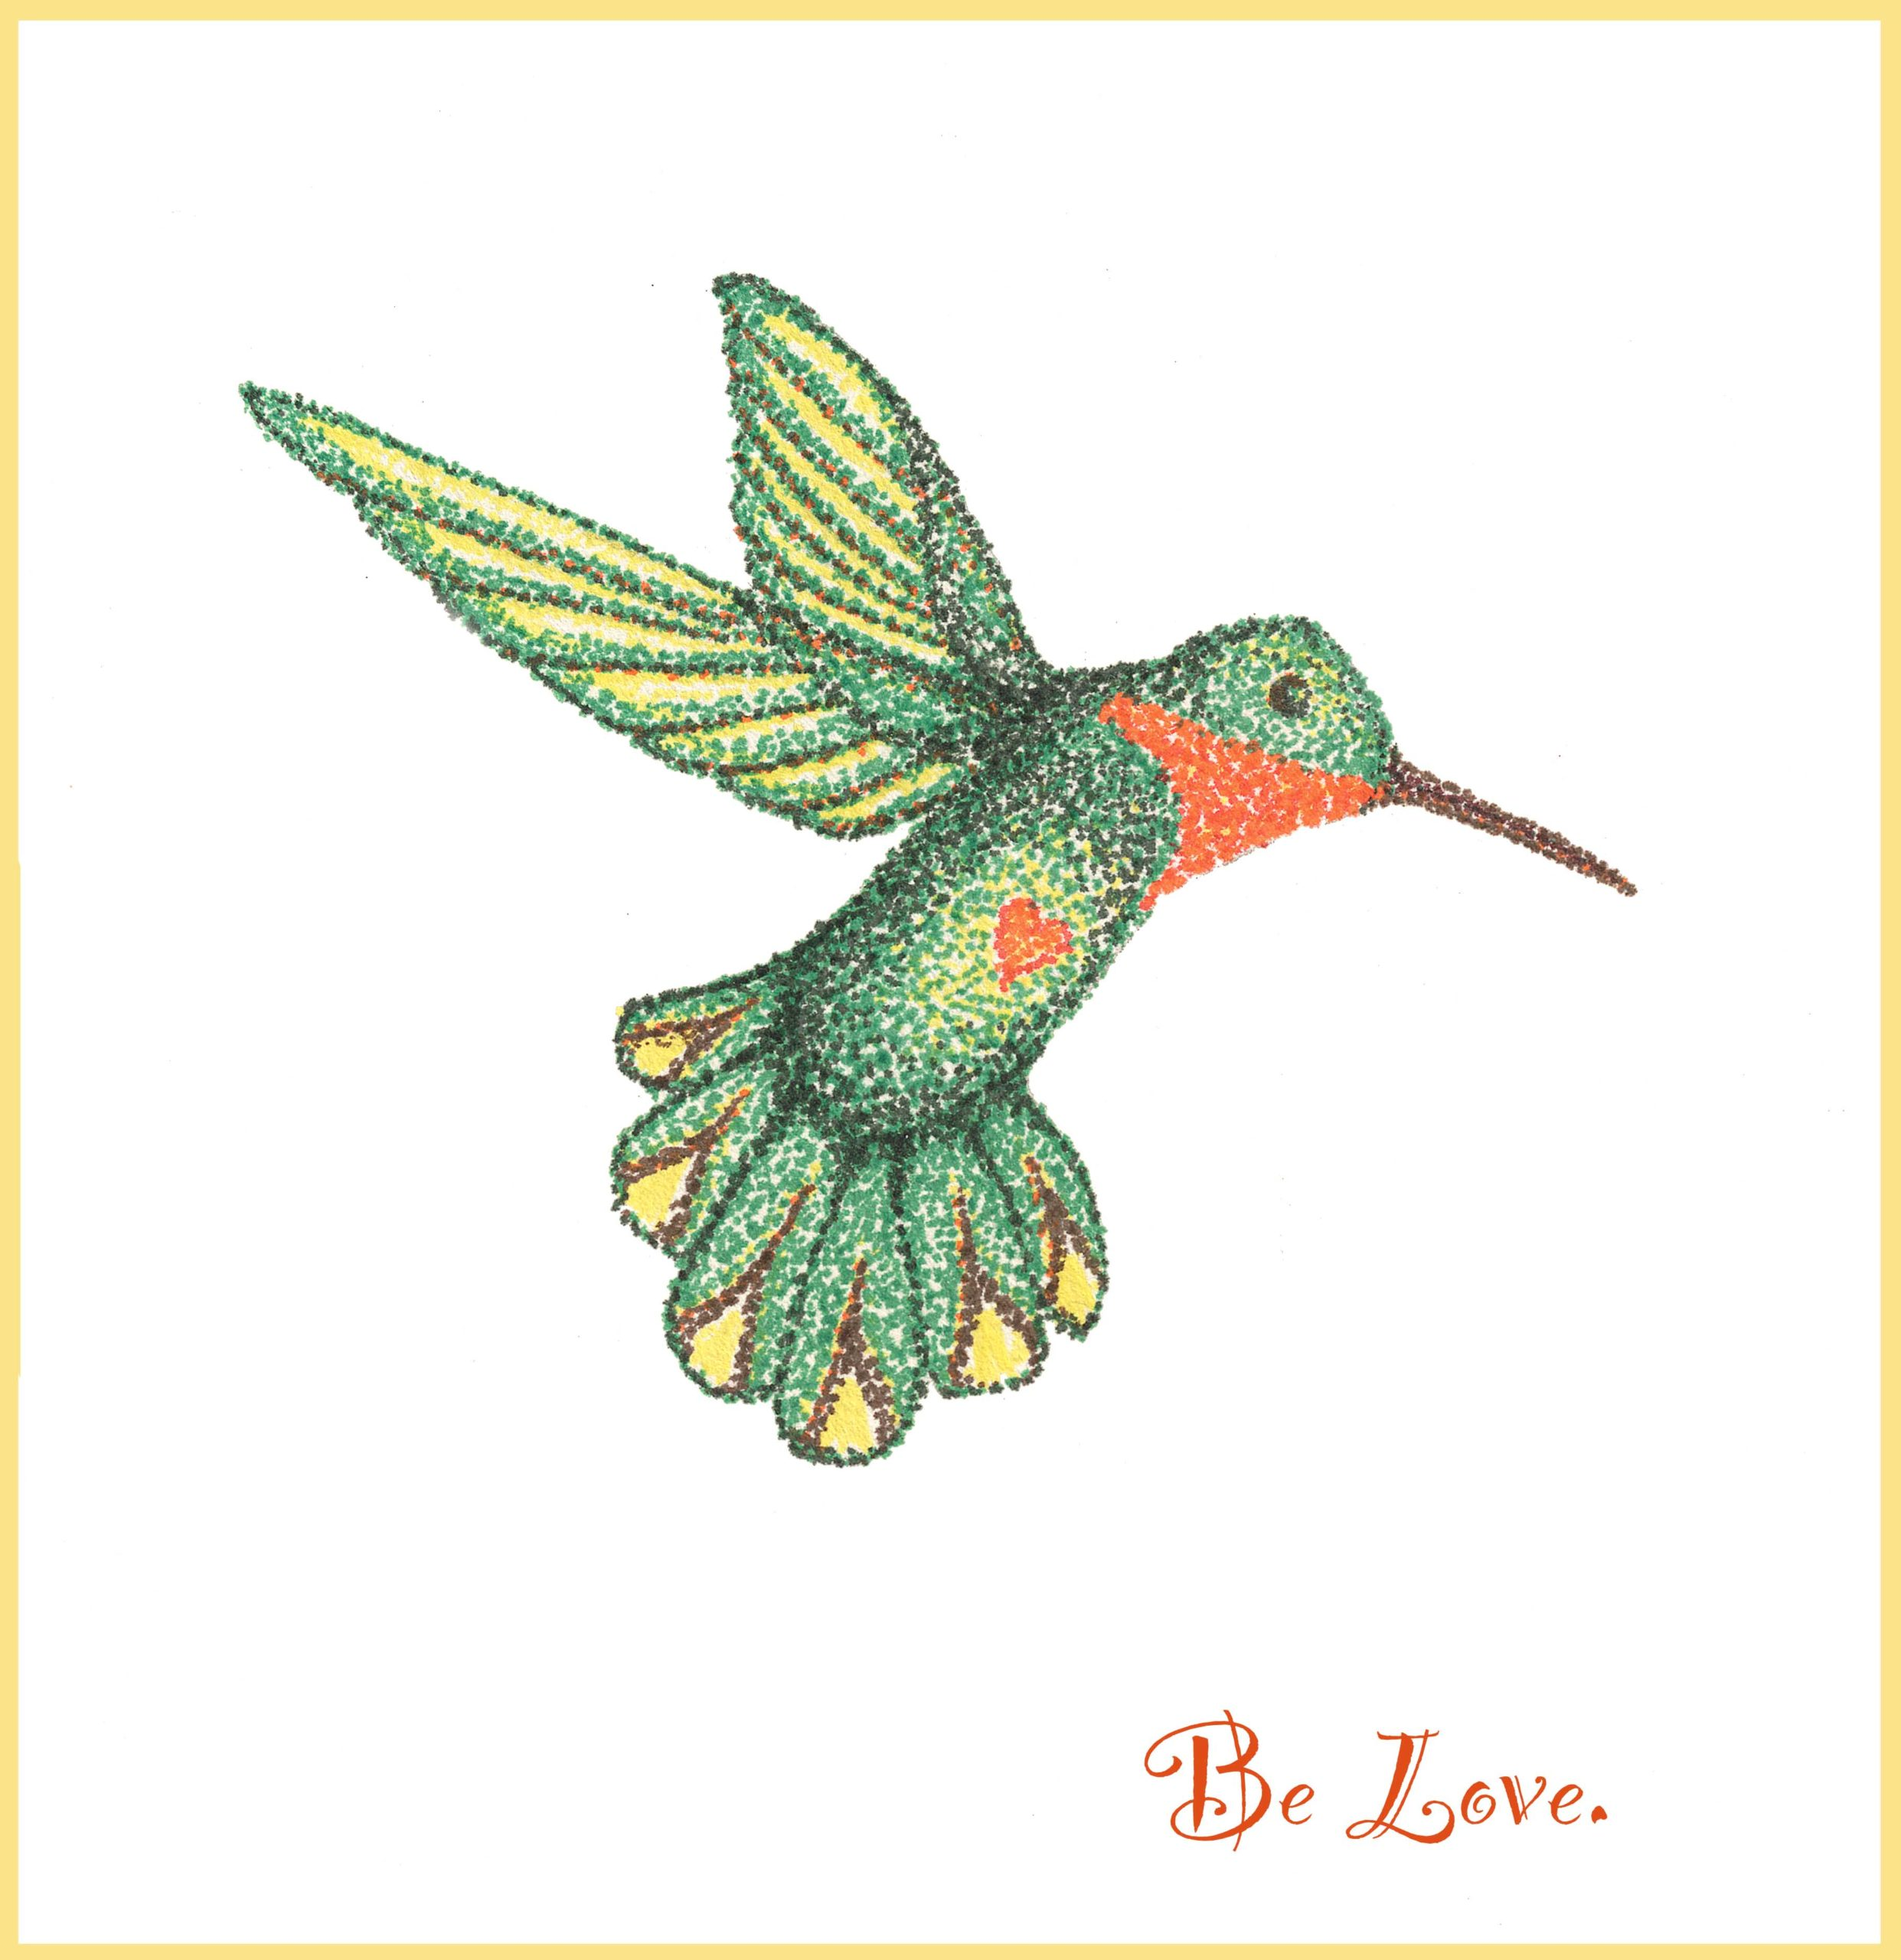 """Joyful Hummer - Be Love"" by Michele Molitor"